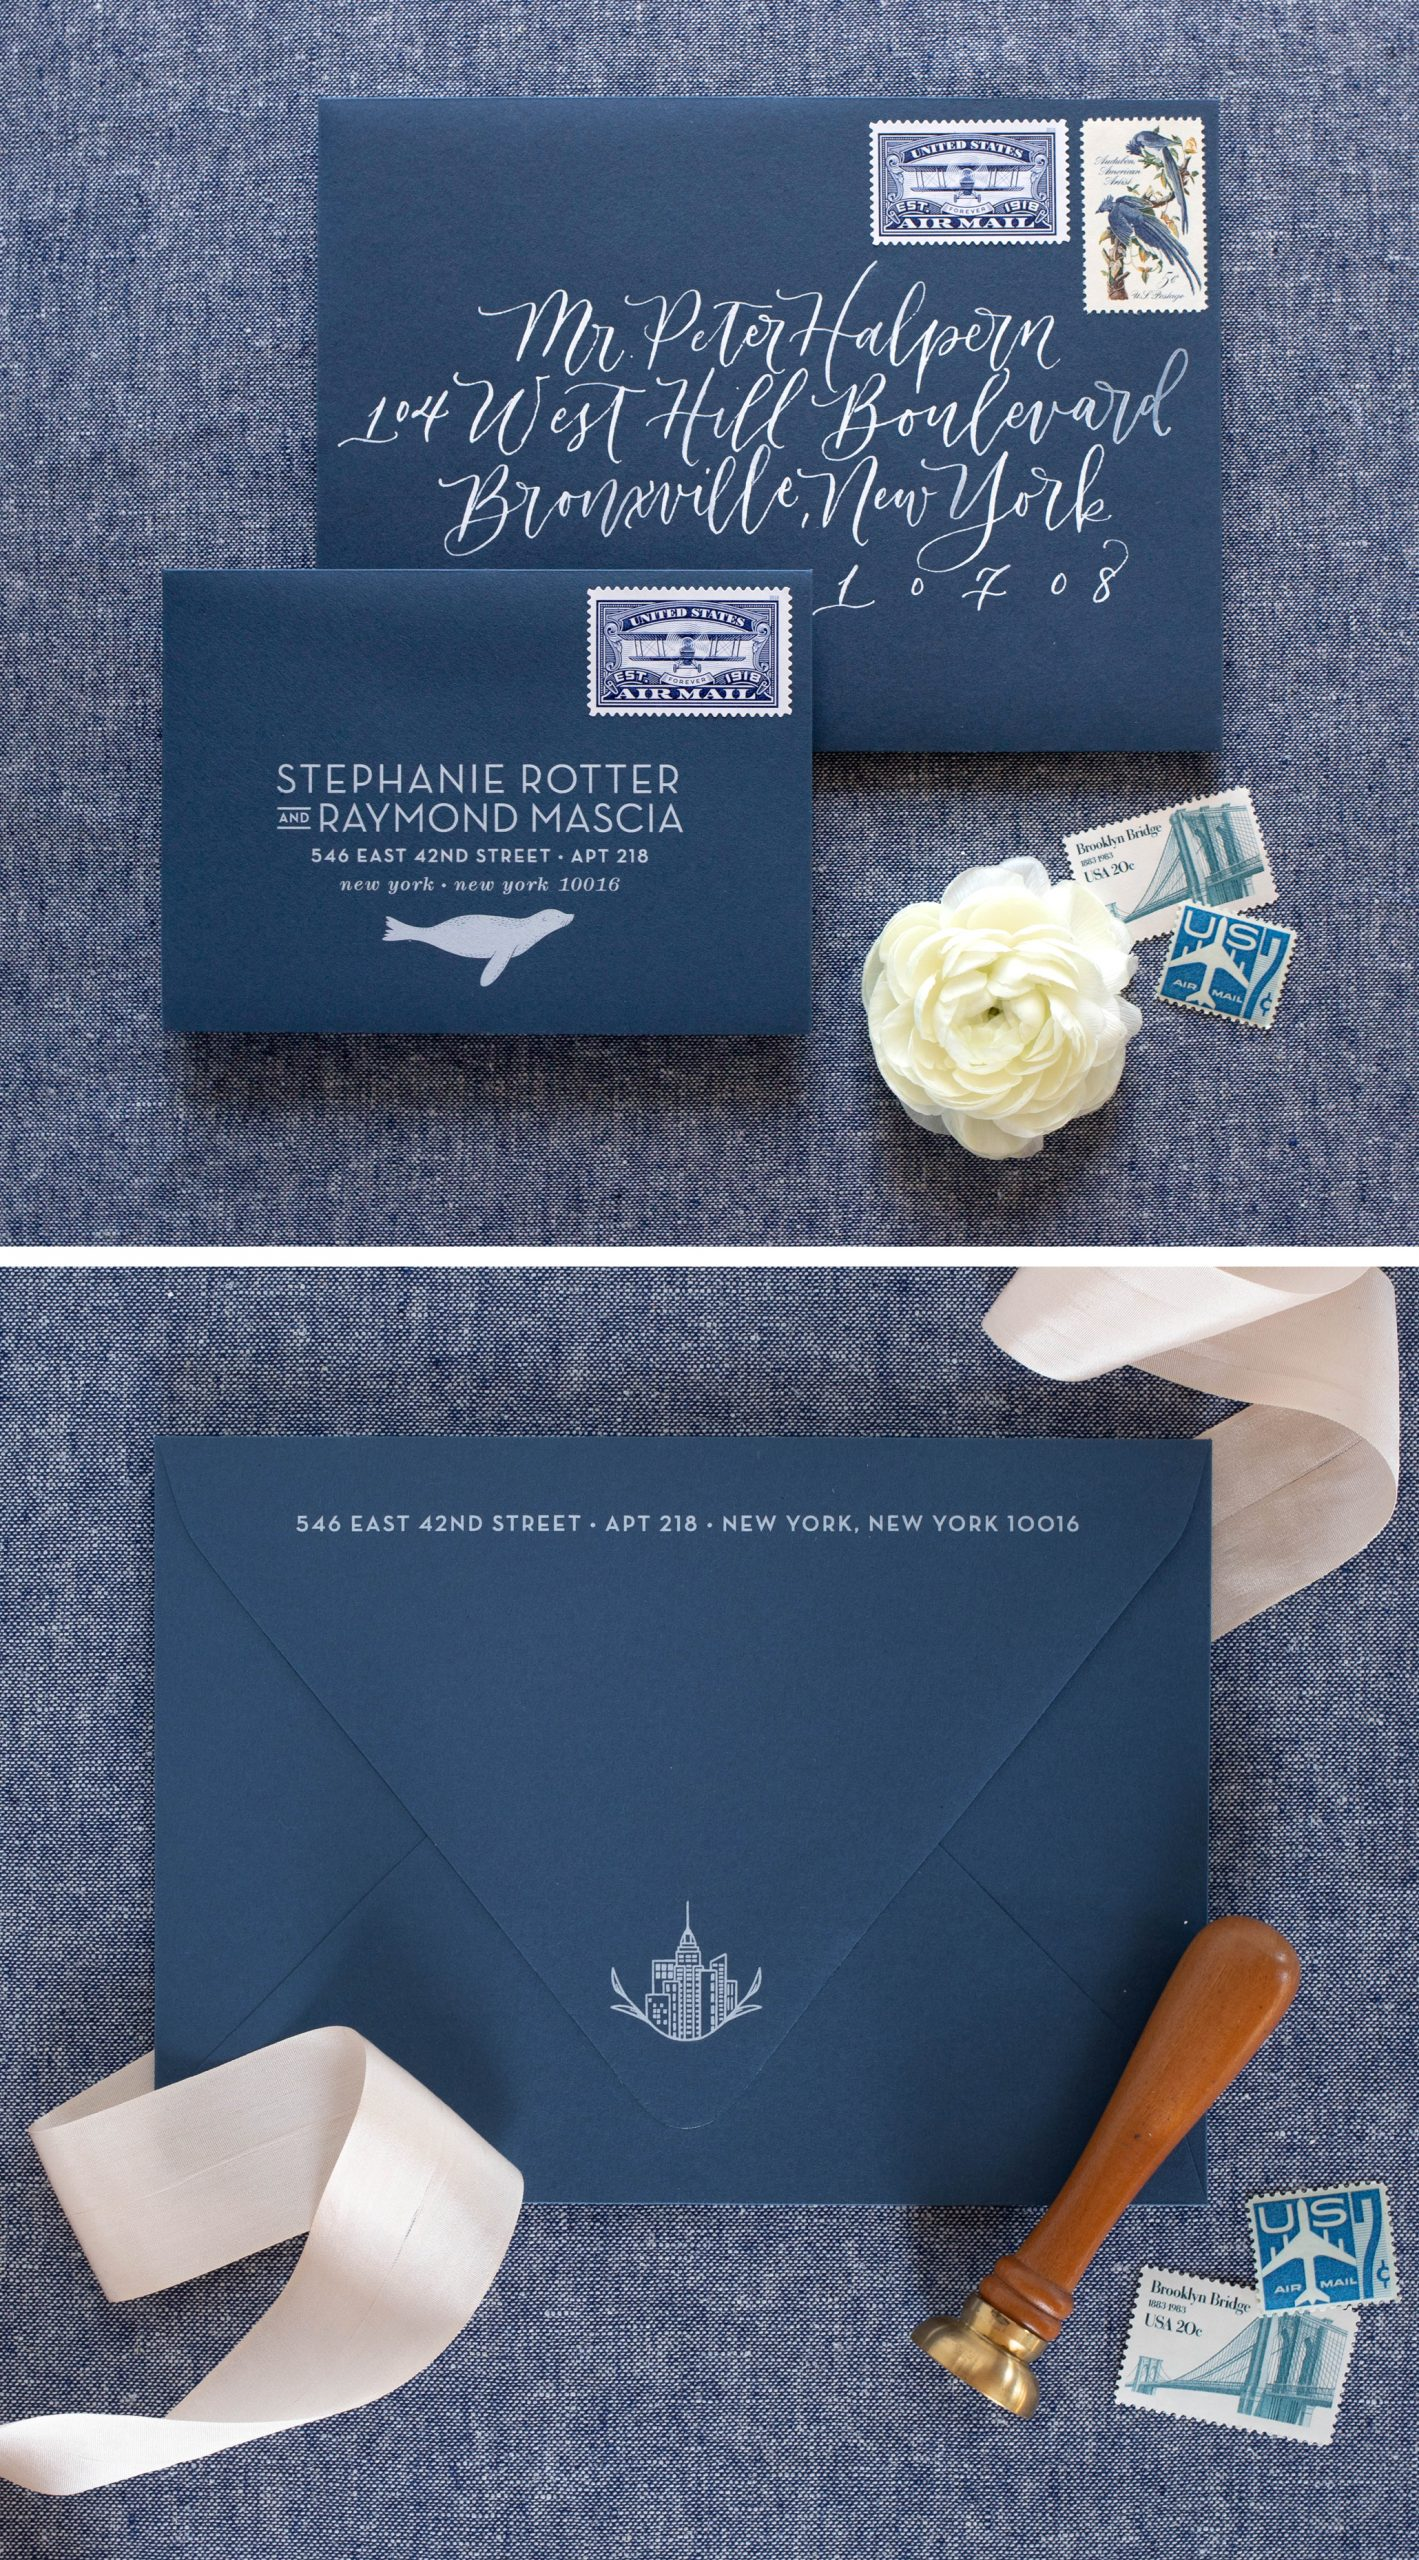 custom illustrated wedding invitation envelopes, unique modern letterpress invitations inspired by nature